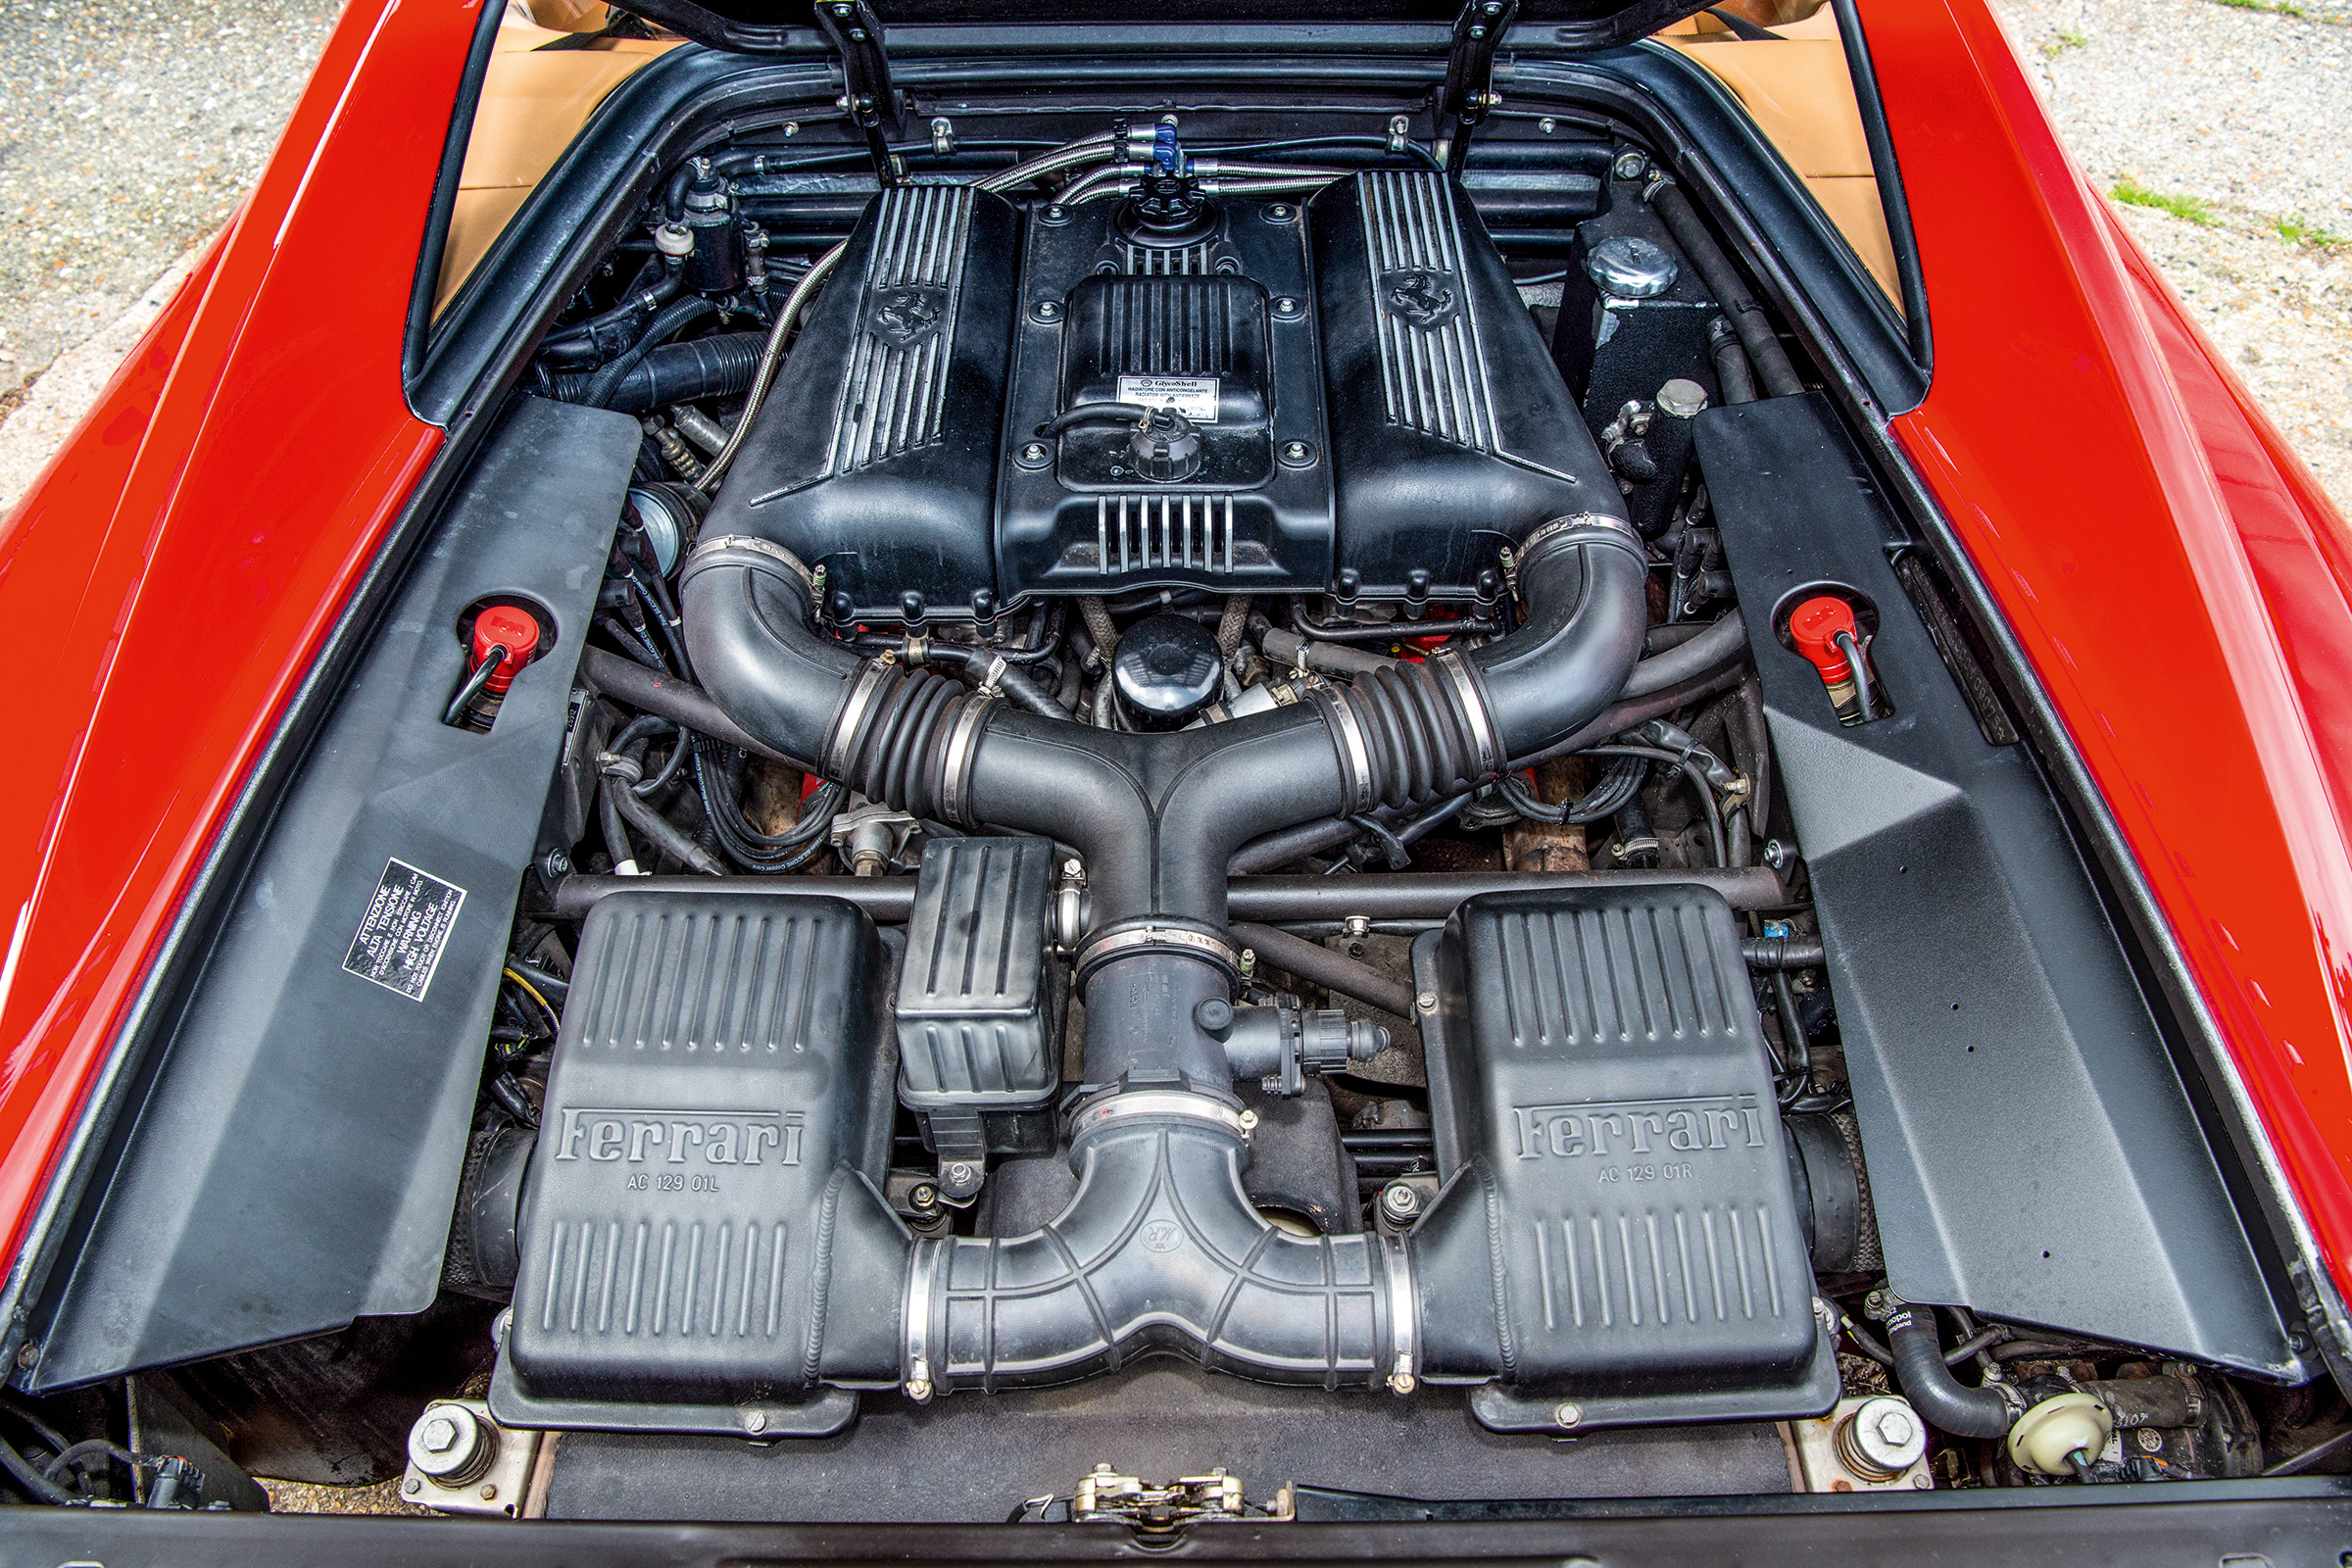 Ferrari F355 Review Specs And Buying Guide Evo